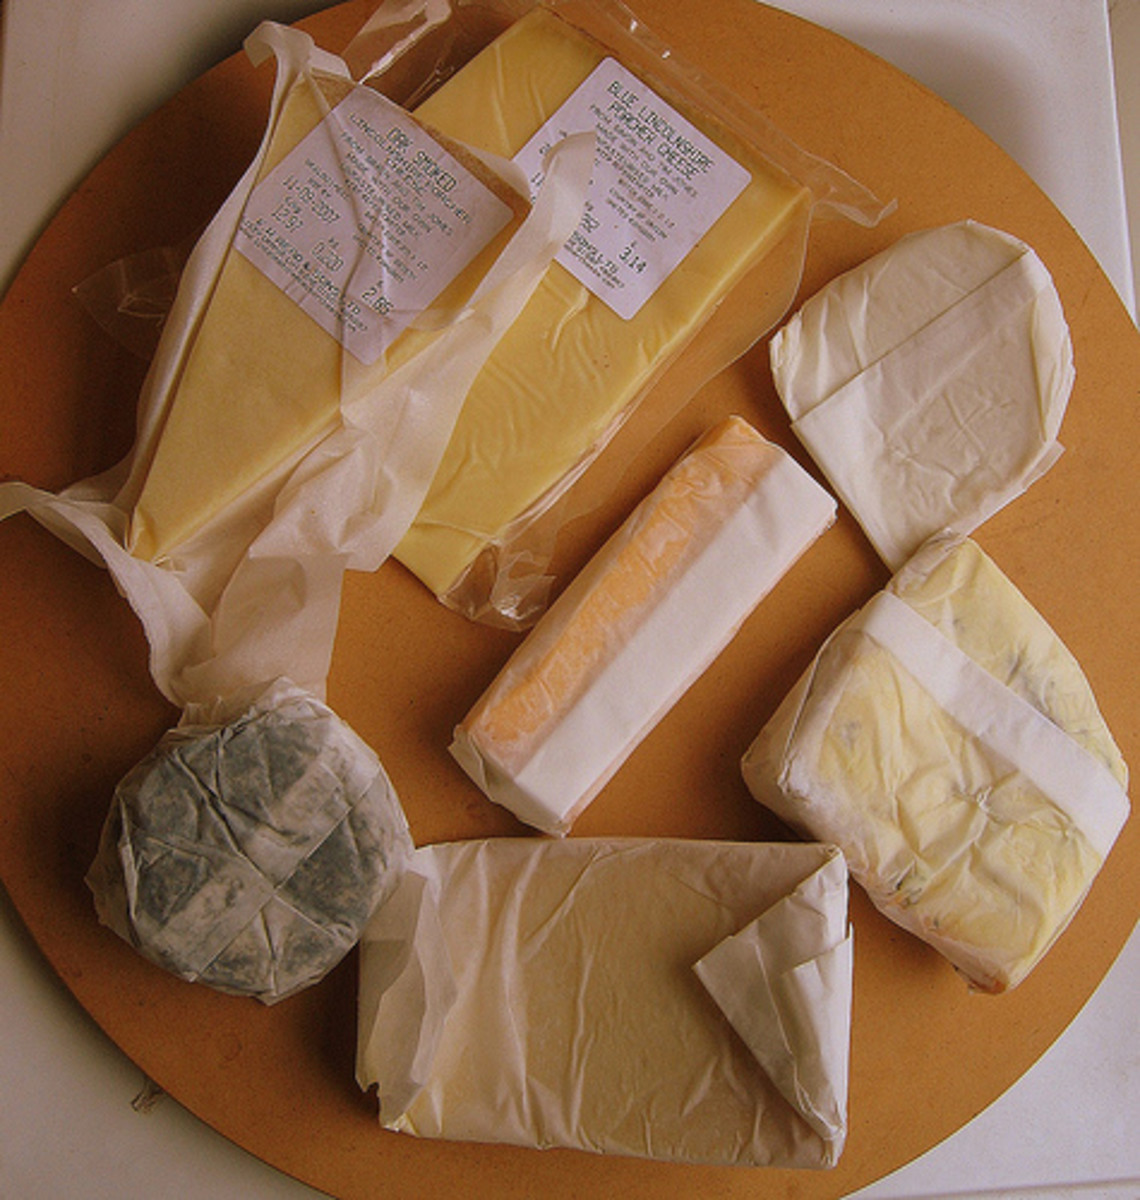 Wrap cheeses in cheese paper, parchment paper, or waxed paper.